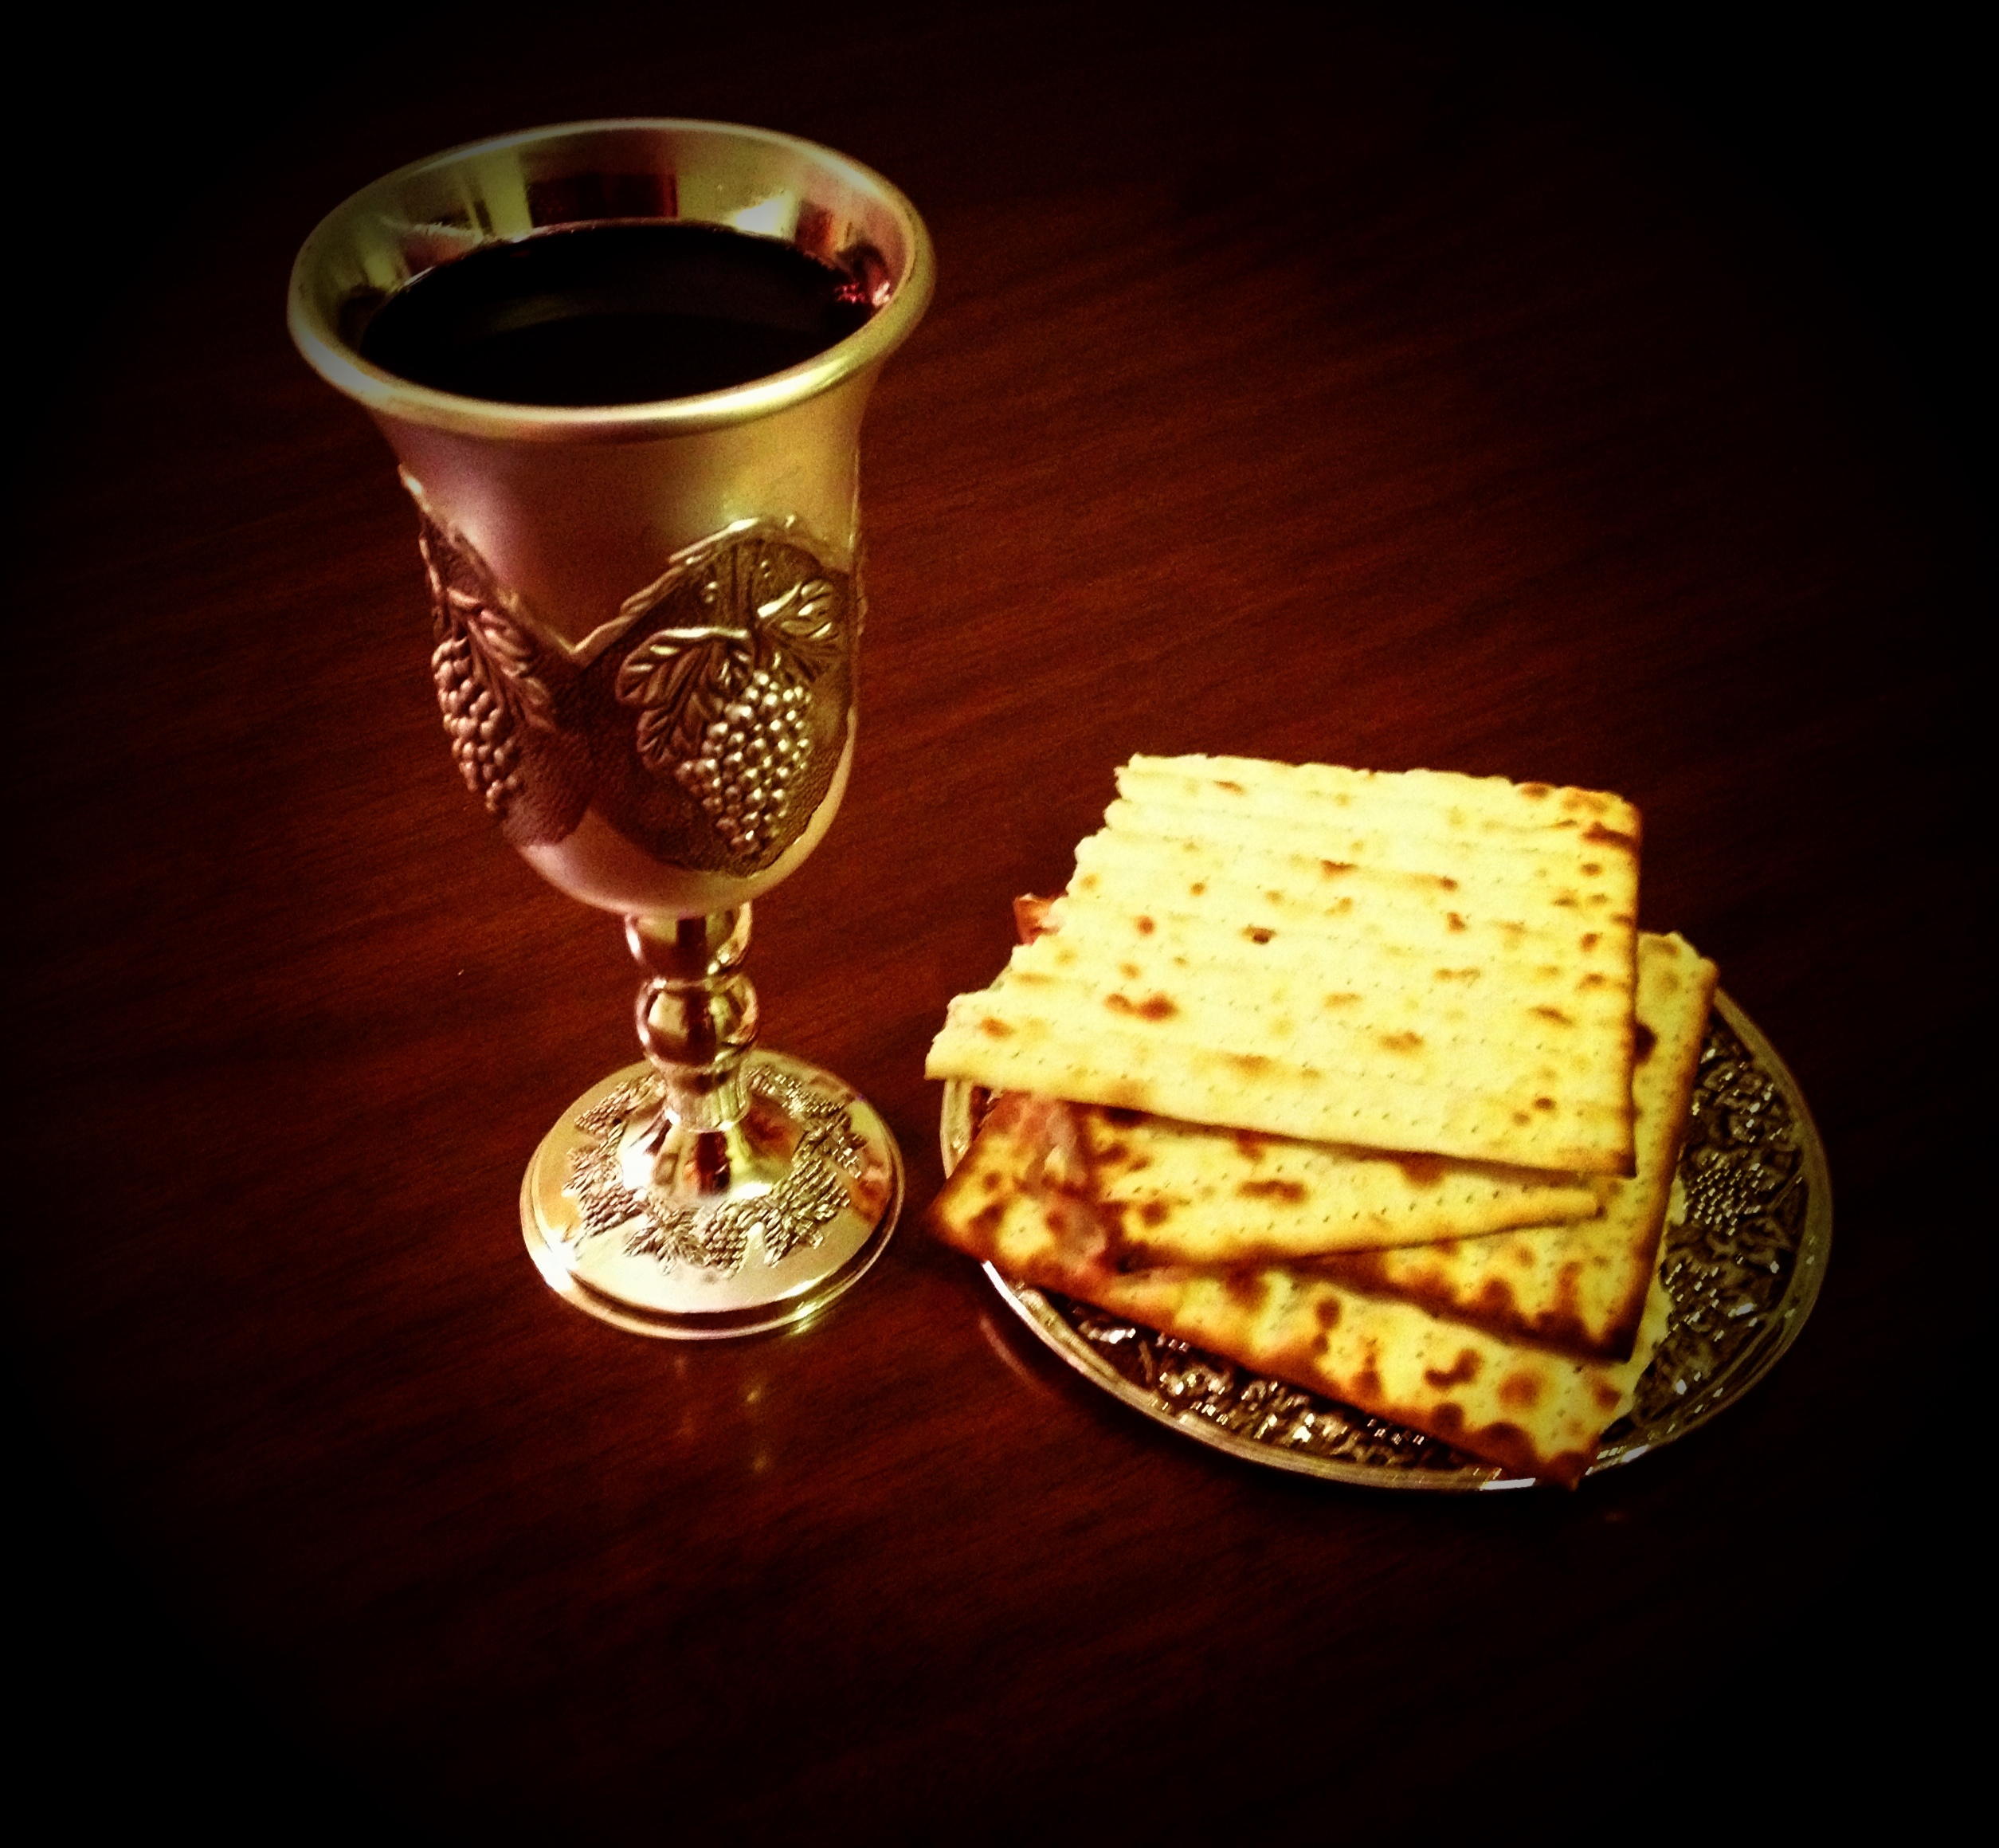 what does the bread represent in holy communion